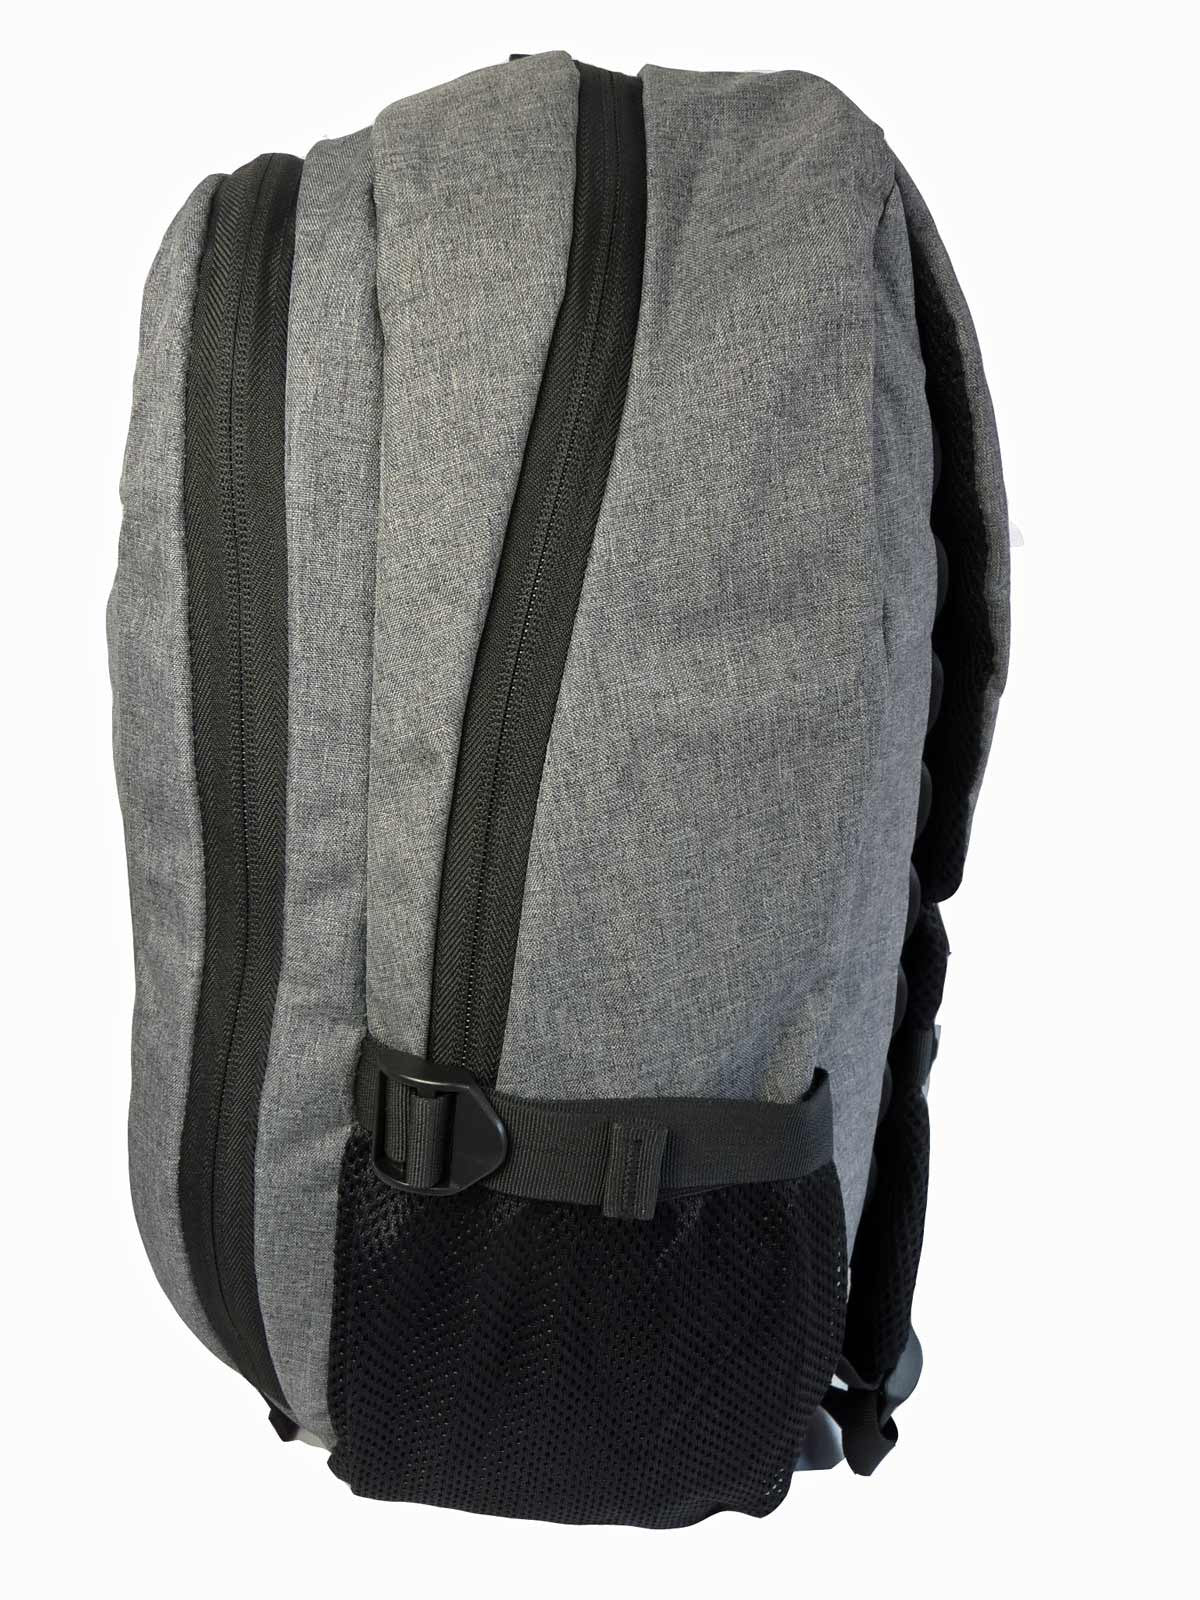 Laptop Macbook Backpack Rucksack Bag RL45GY S Side View